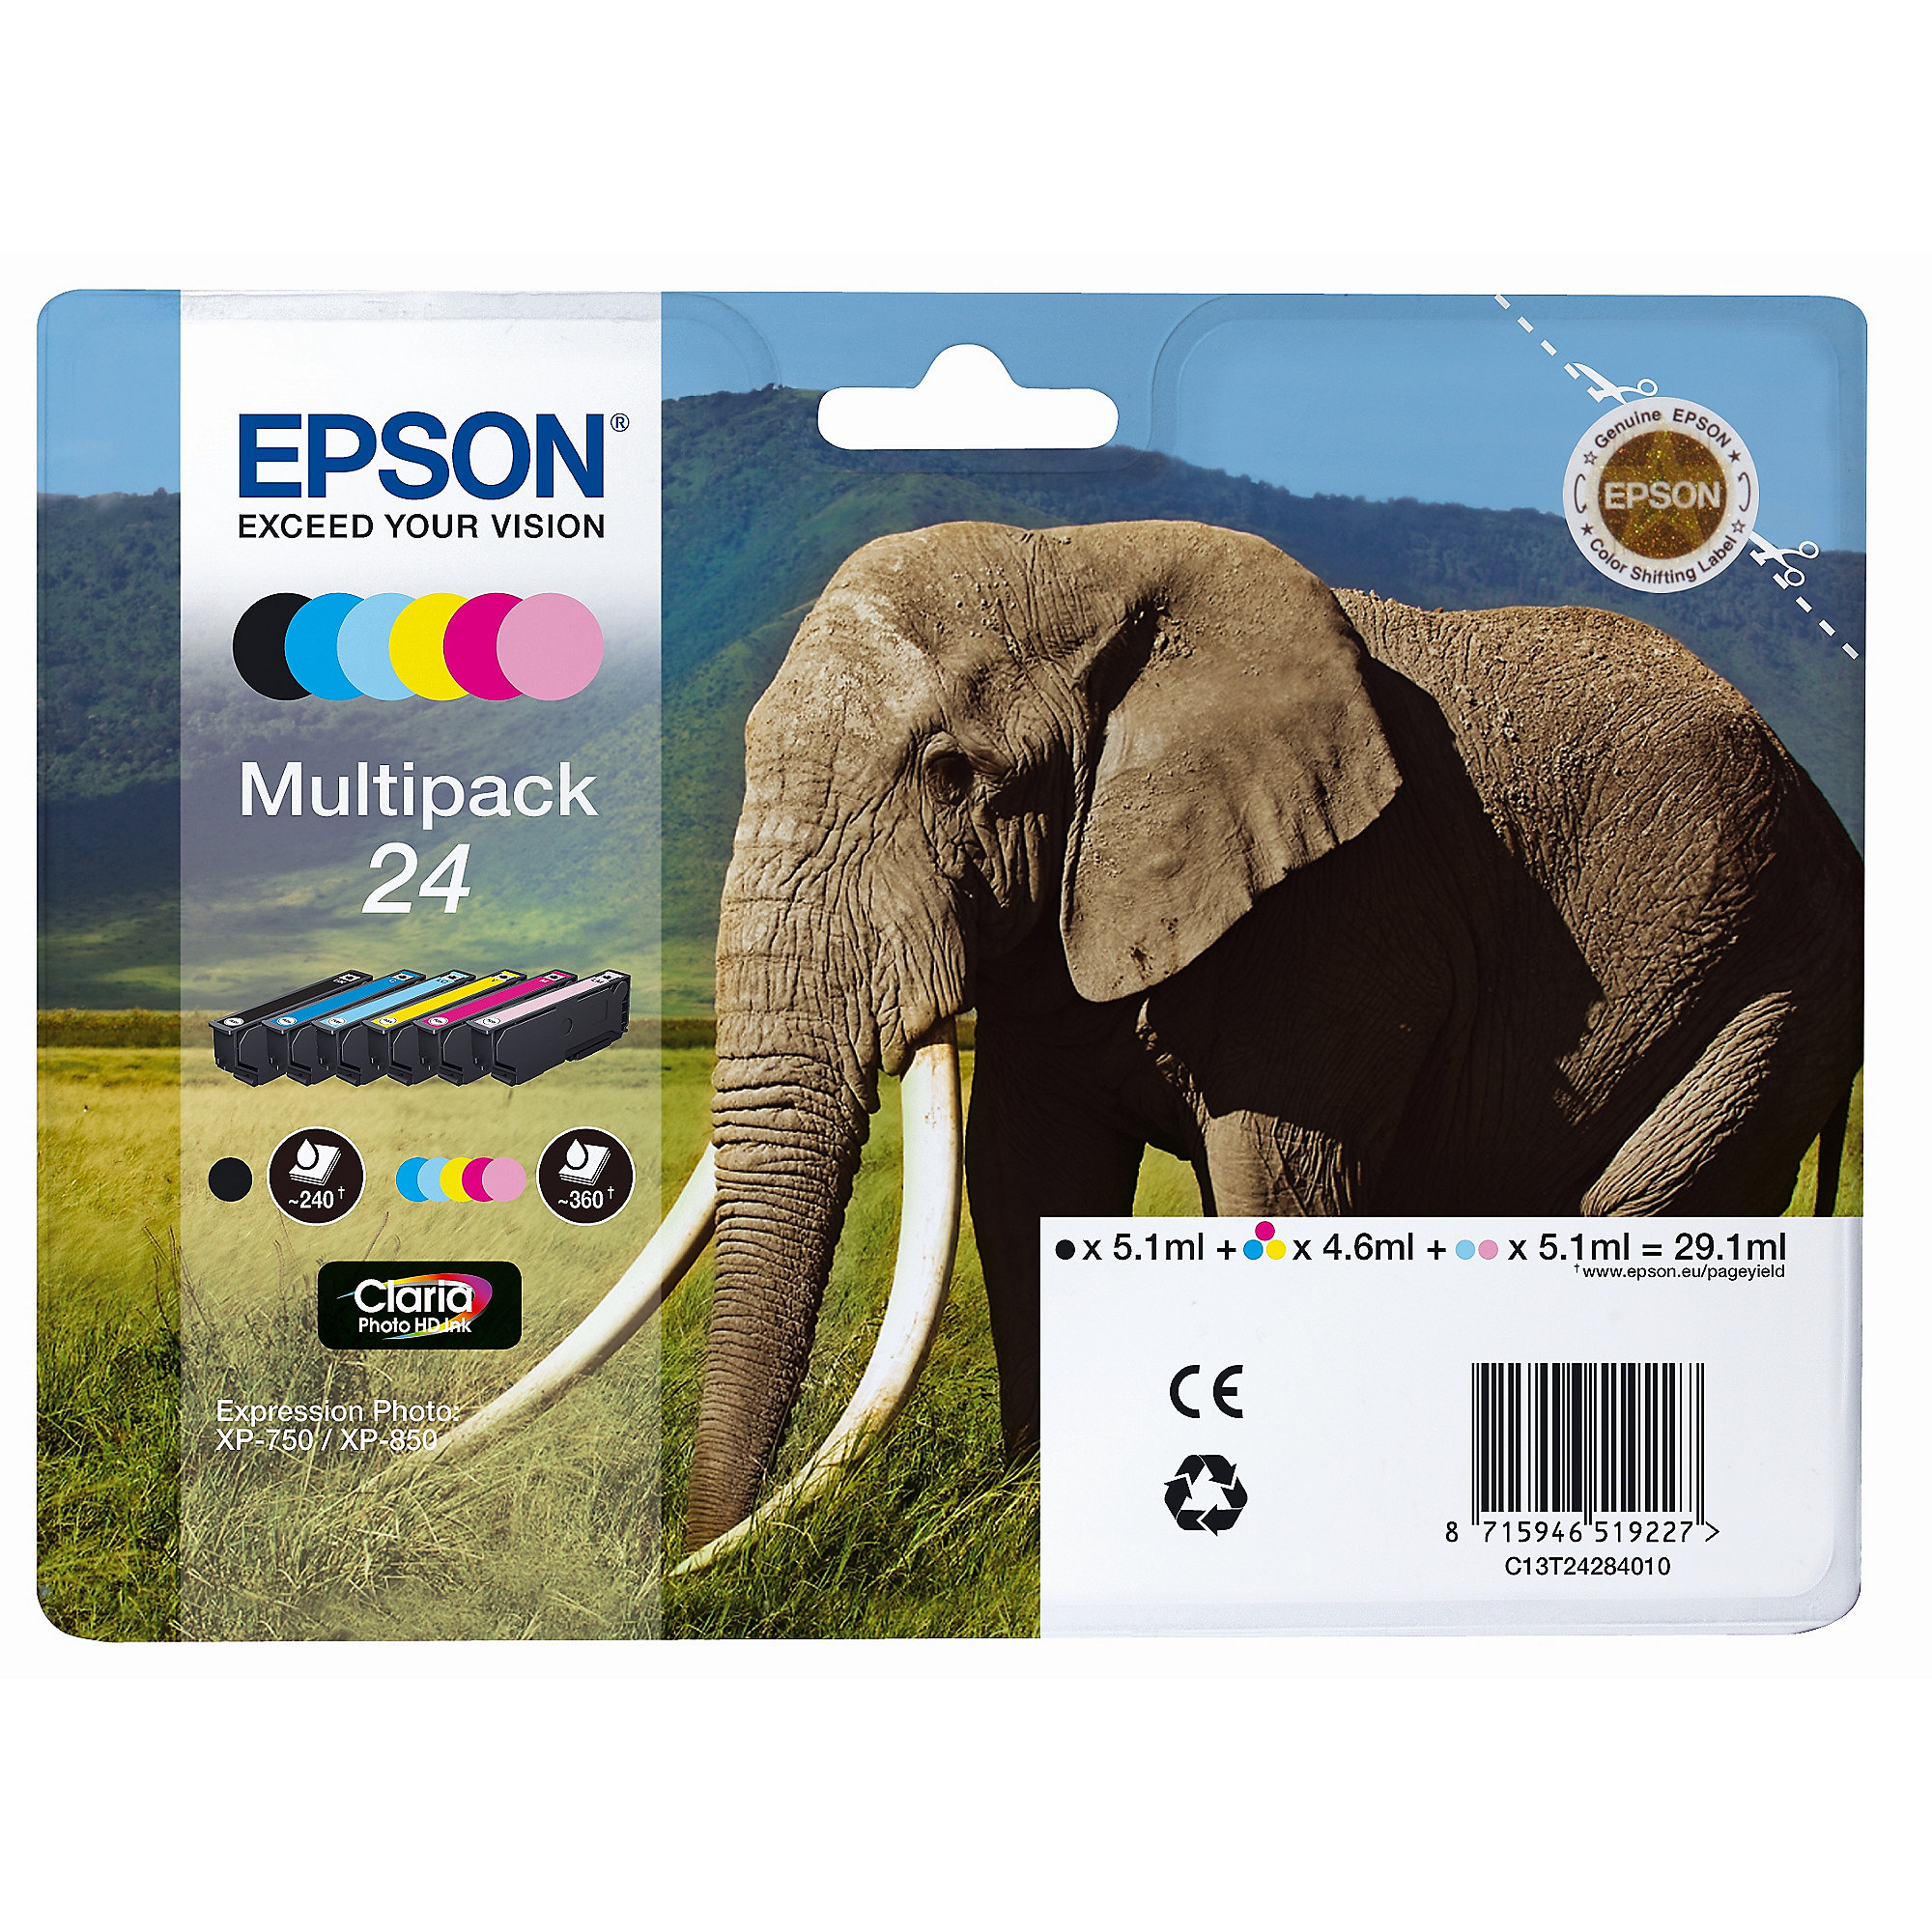 EPSON Expression Photo XP-960 Drucker Scanner Kopierer A3 + Tintenmultipack 24